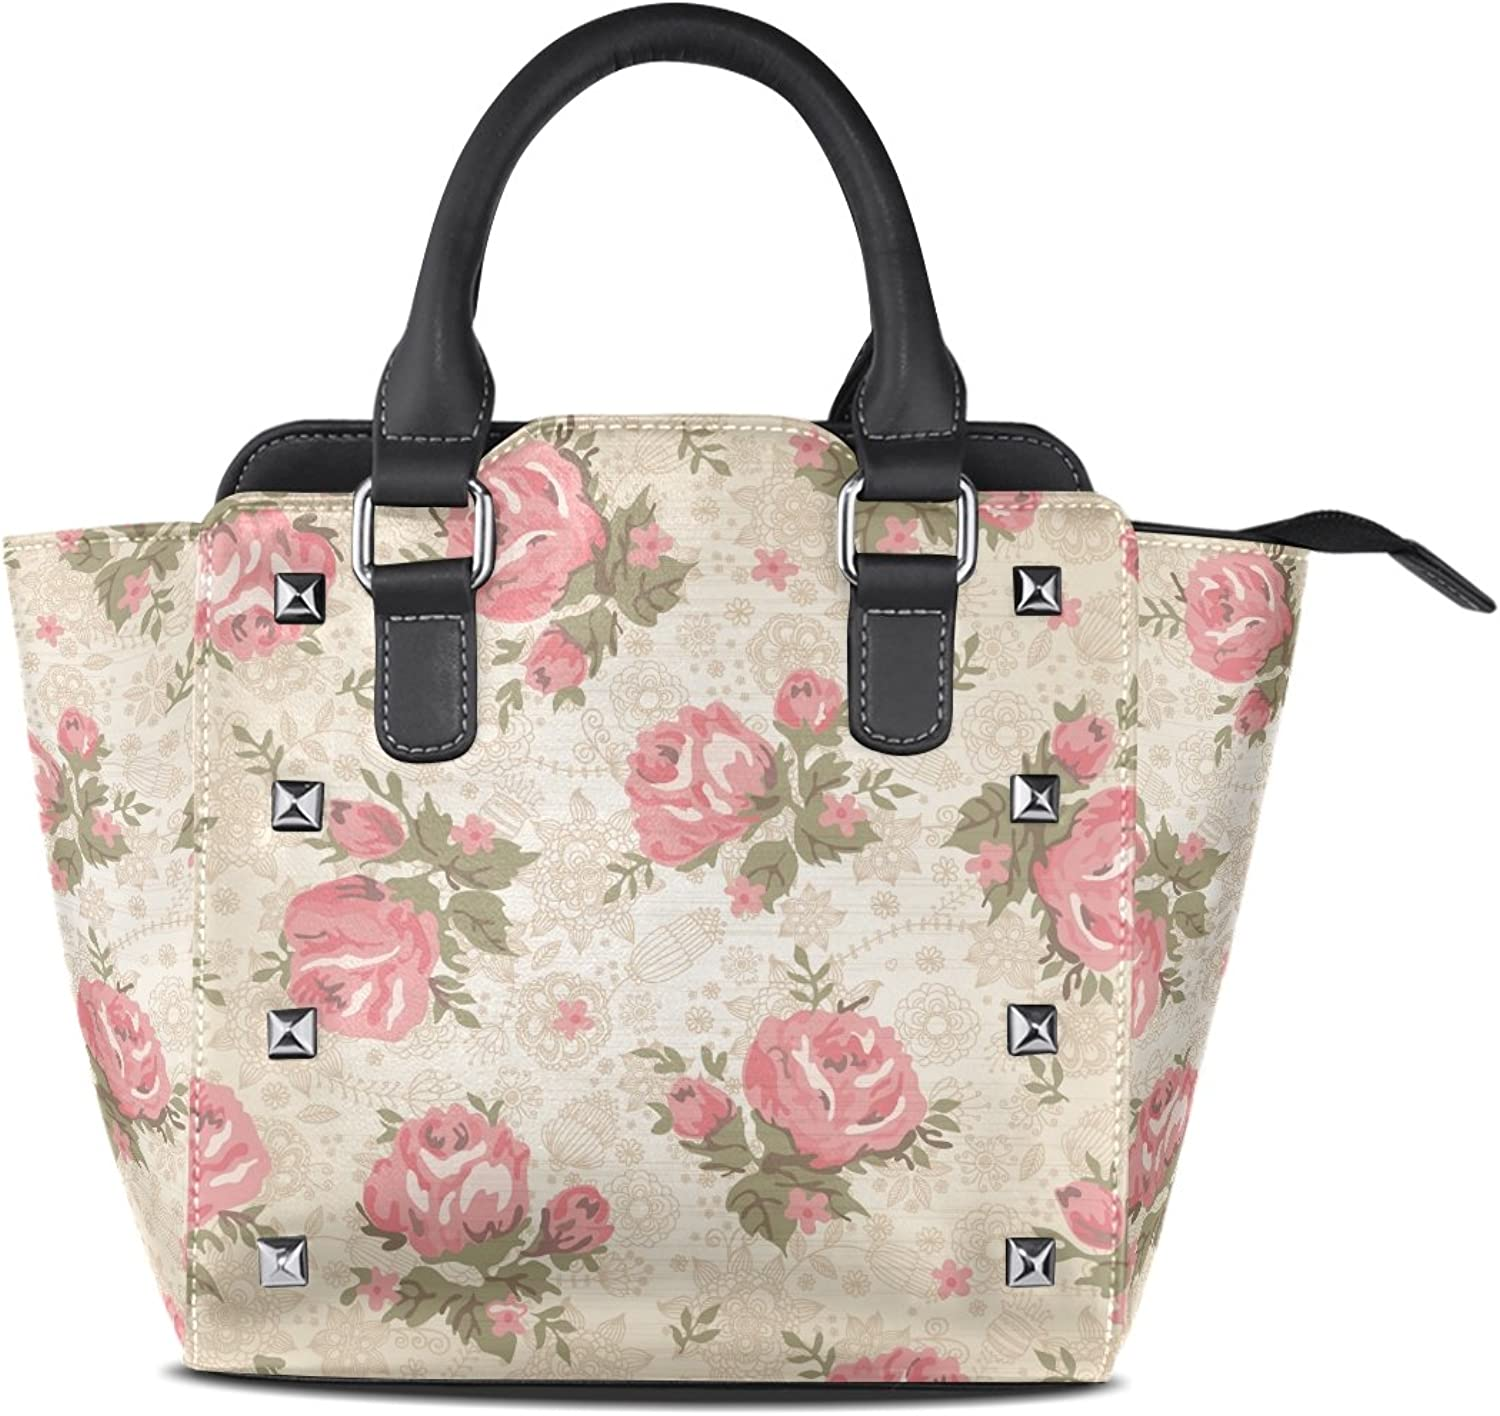 Sunlome Vintage Floral Print Women's Leather Tote Shoulder Bags Handbags